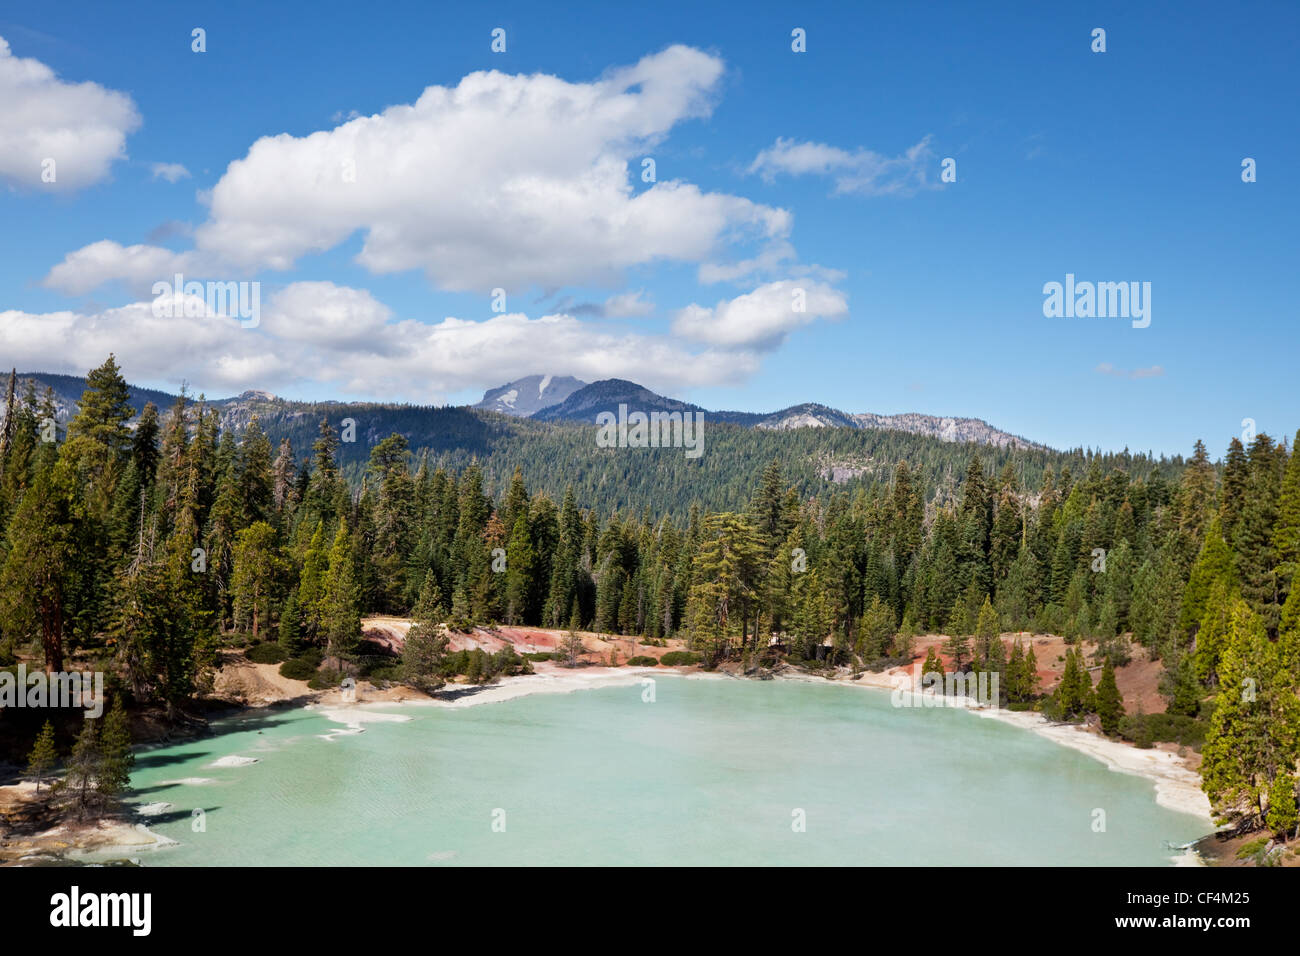 Landscapes in Lassen Volcanic Park - Stock Image